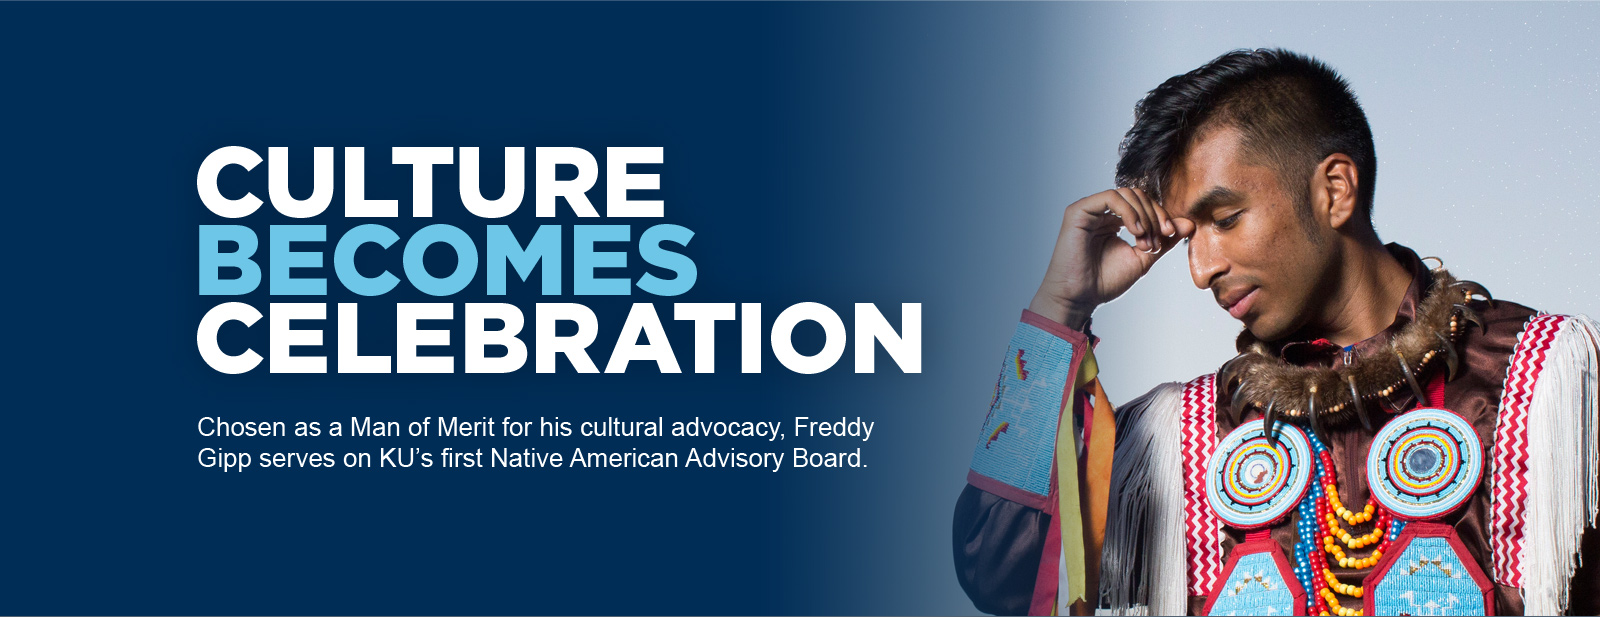 Chosen as a Man of Merit for his cultural advocacy, Freddy Gipp serves on KU's first Native American Advisory Board.